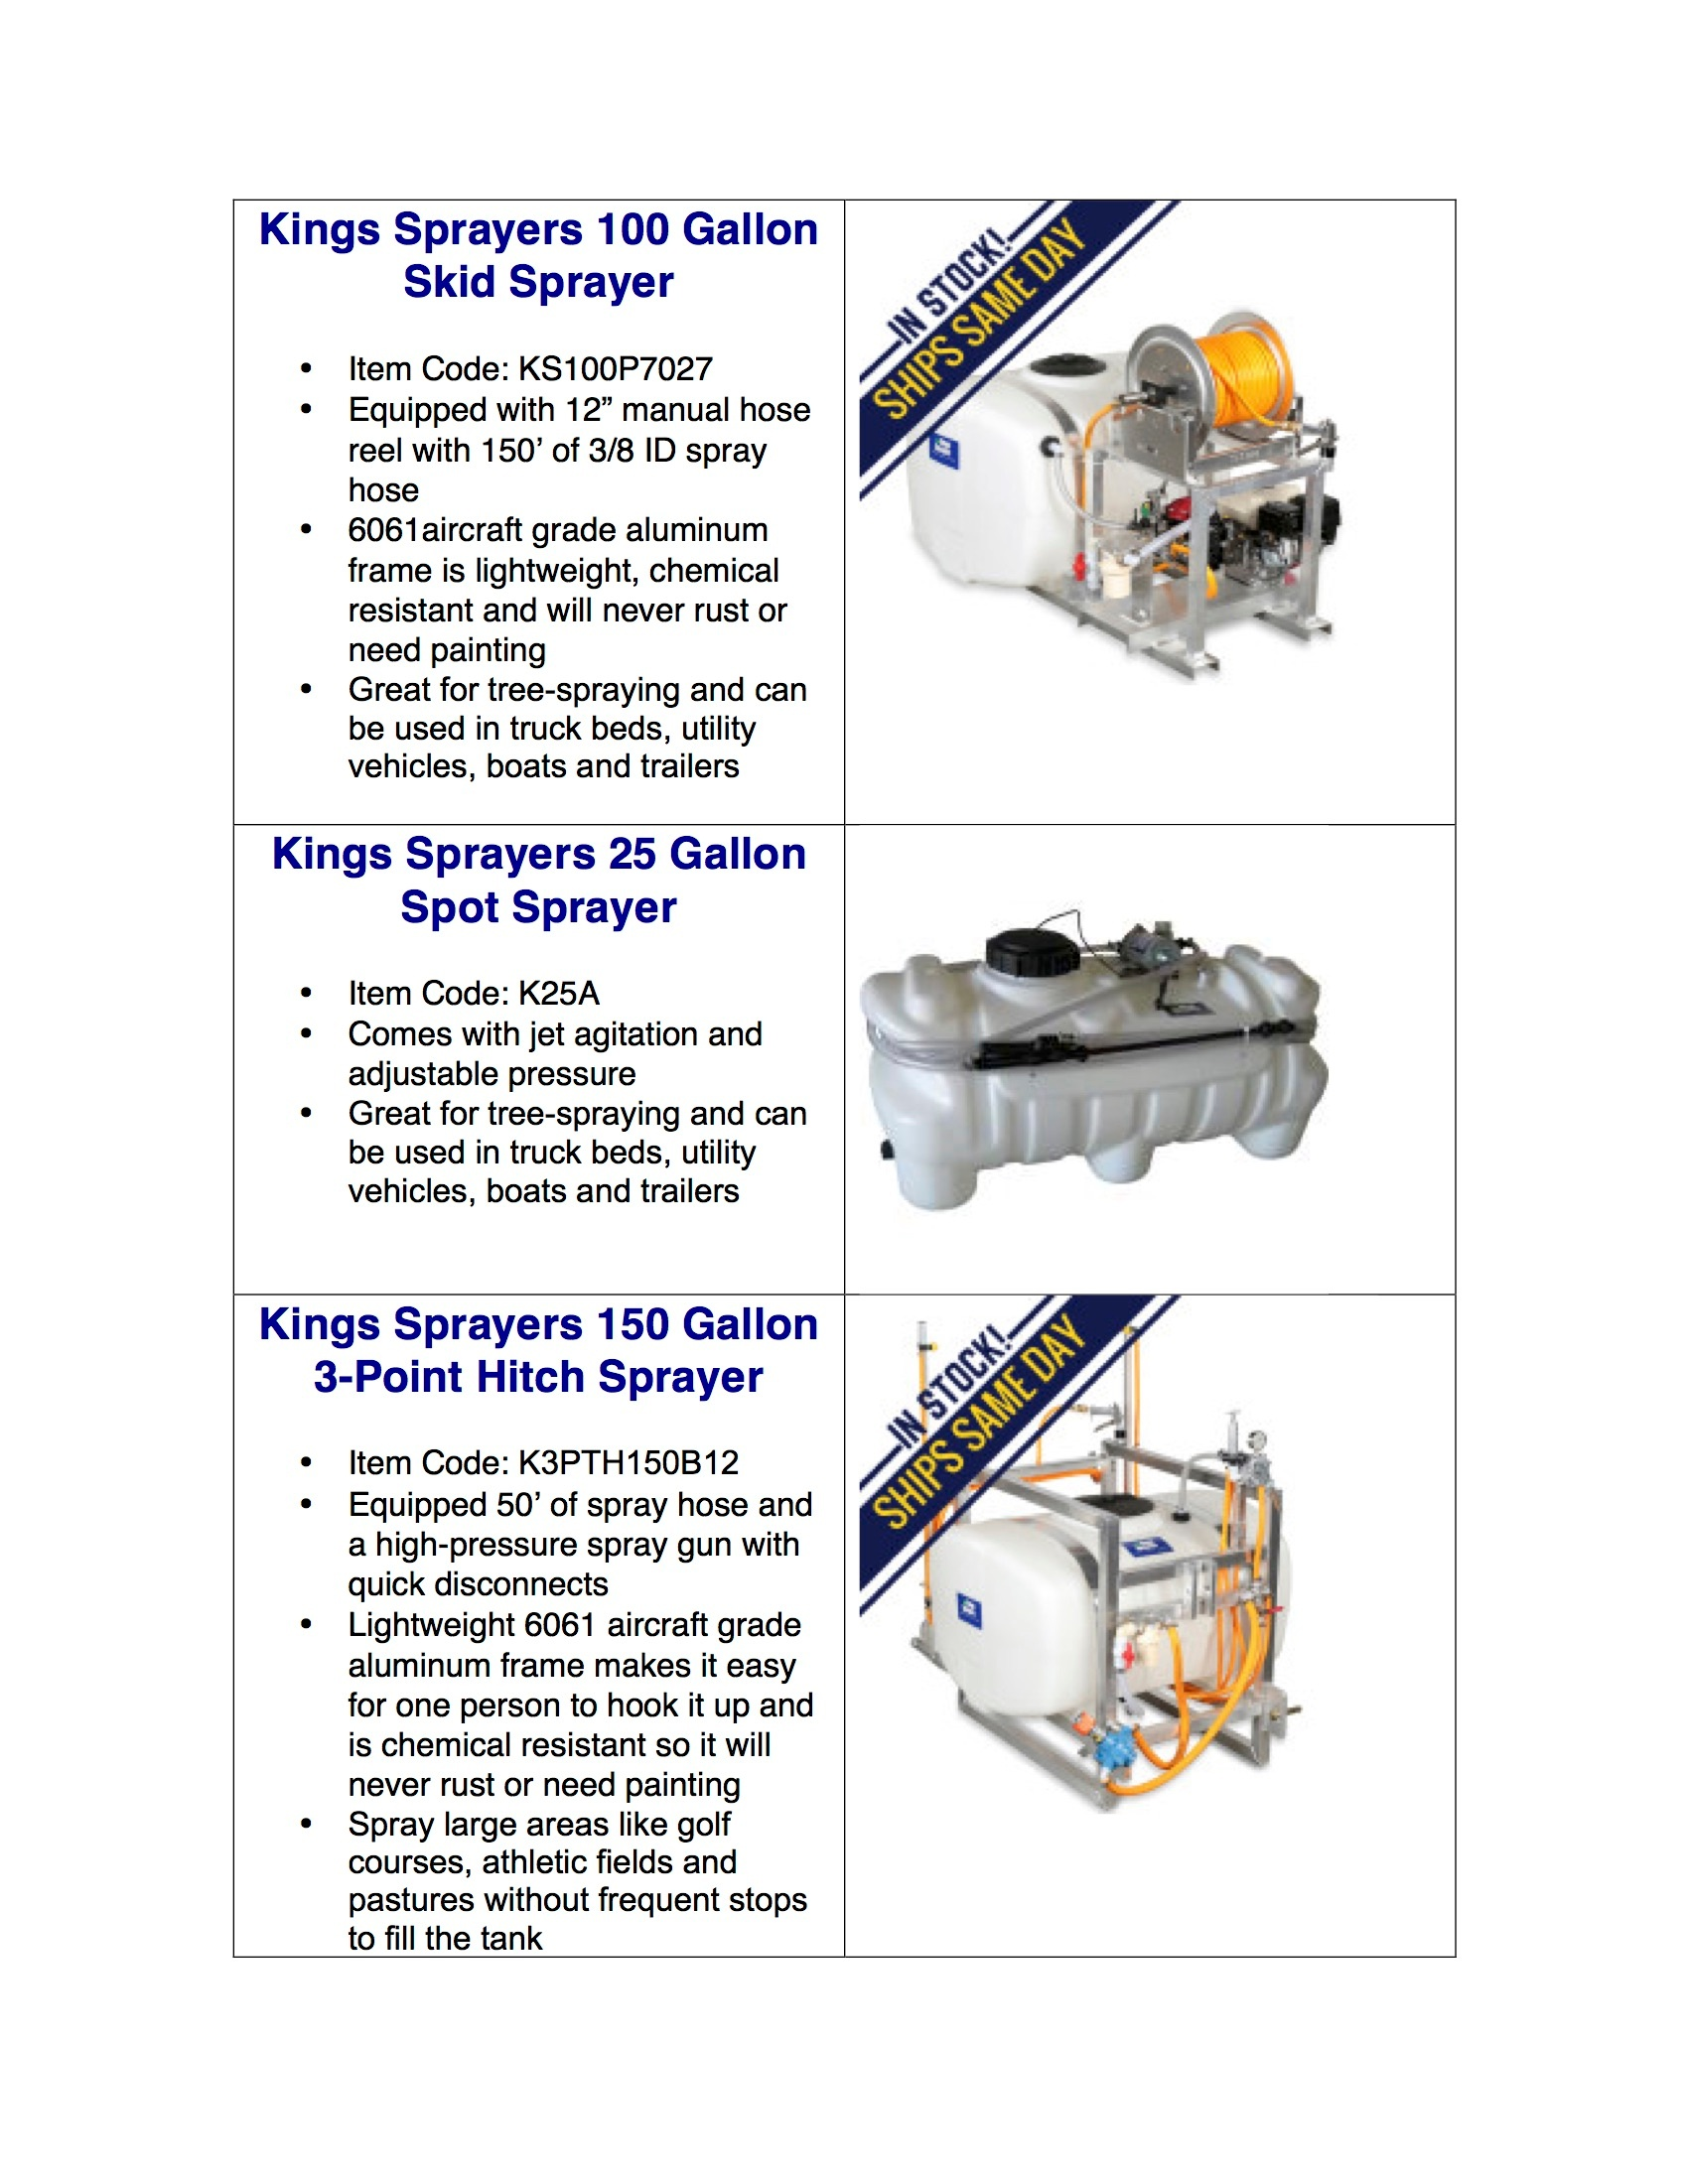 Kings Sprayers for blog post.jpg